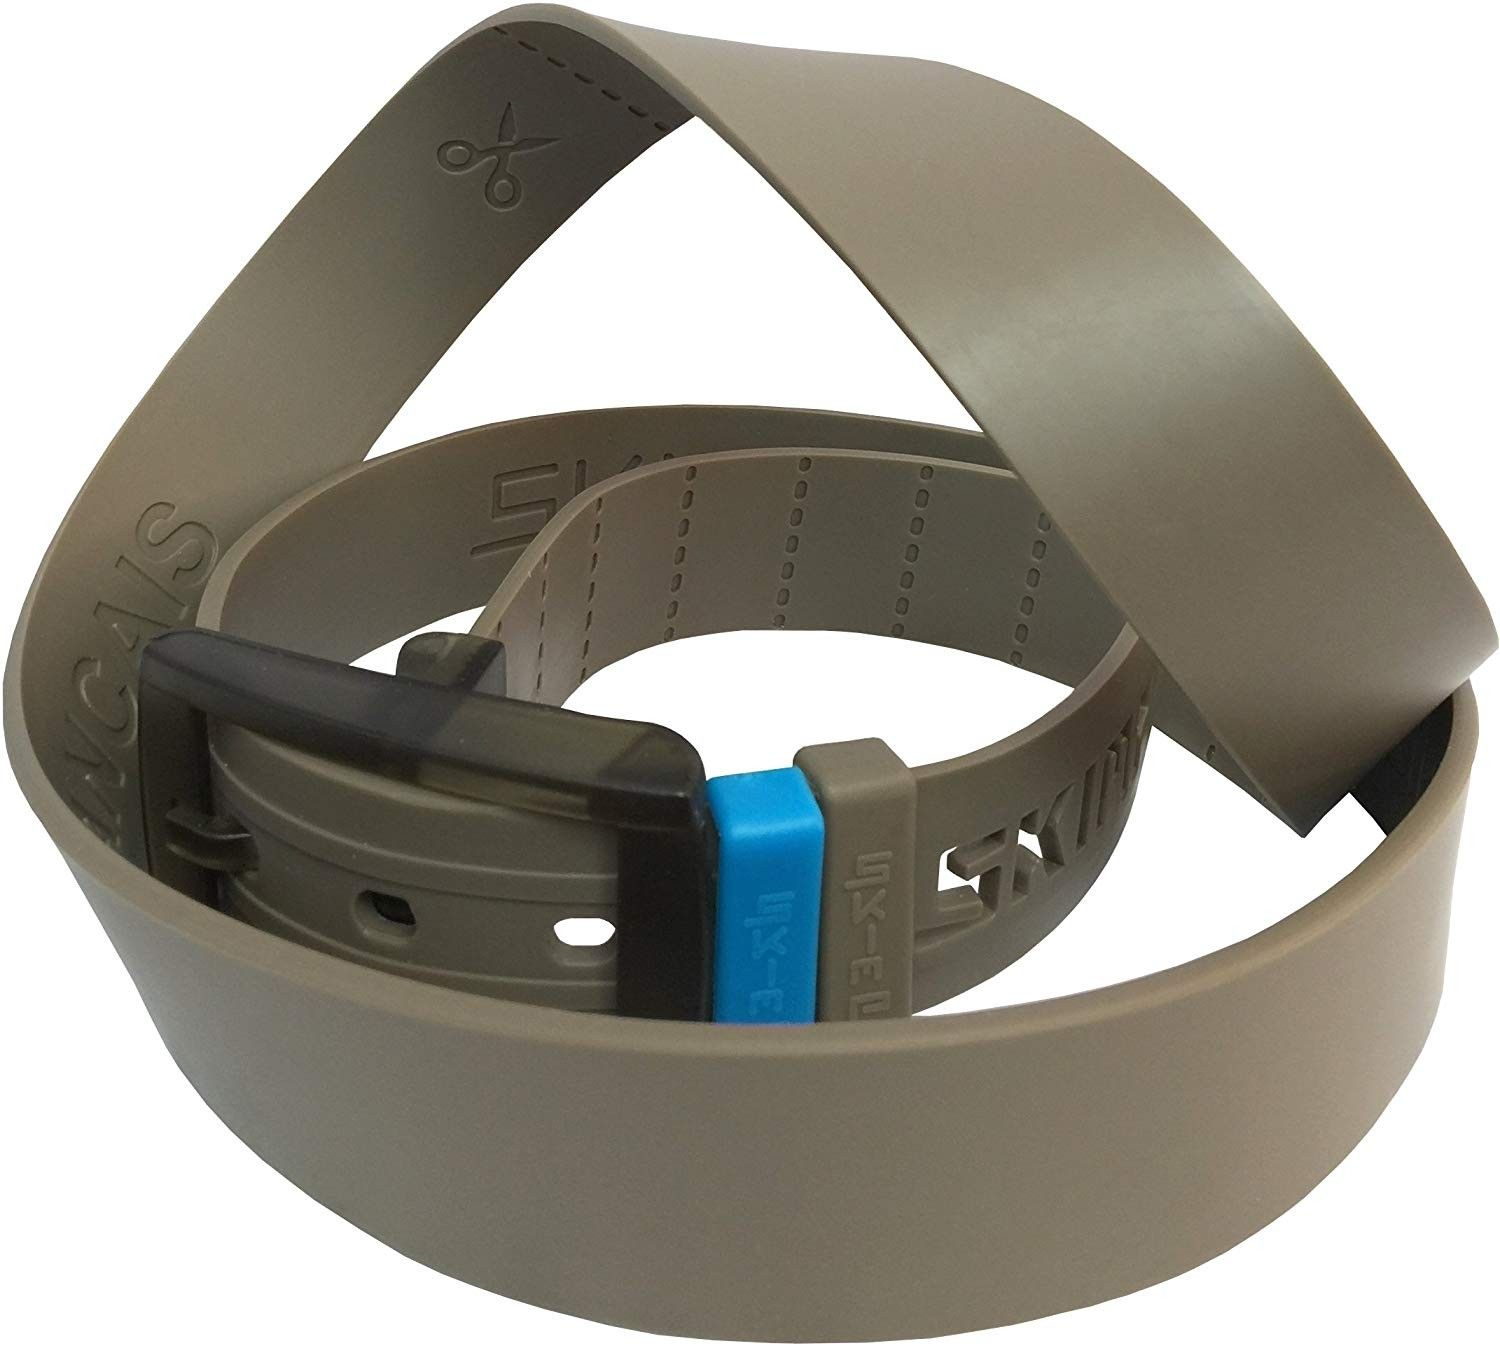 Durable Rubber Belt - Metal Free and Waterproof - 100% Recycled Poly Blend - Weather Resistant - Bei...